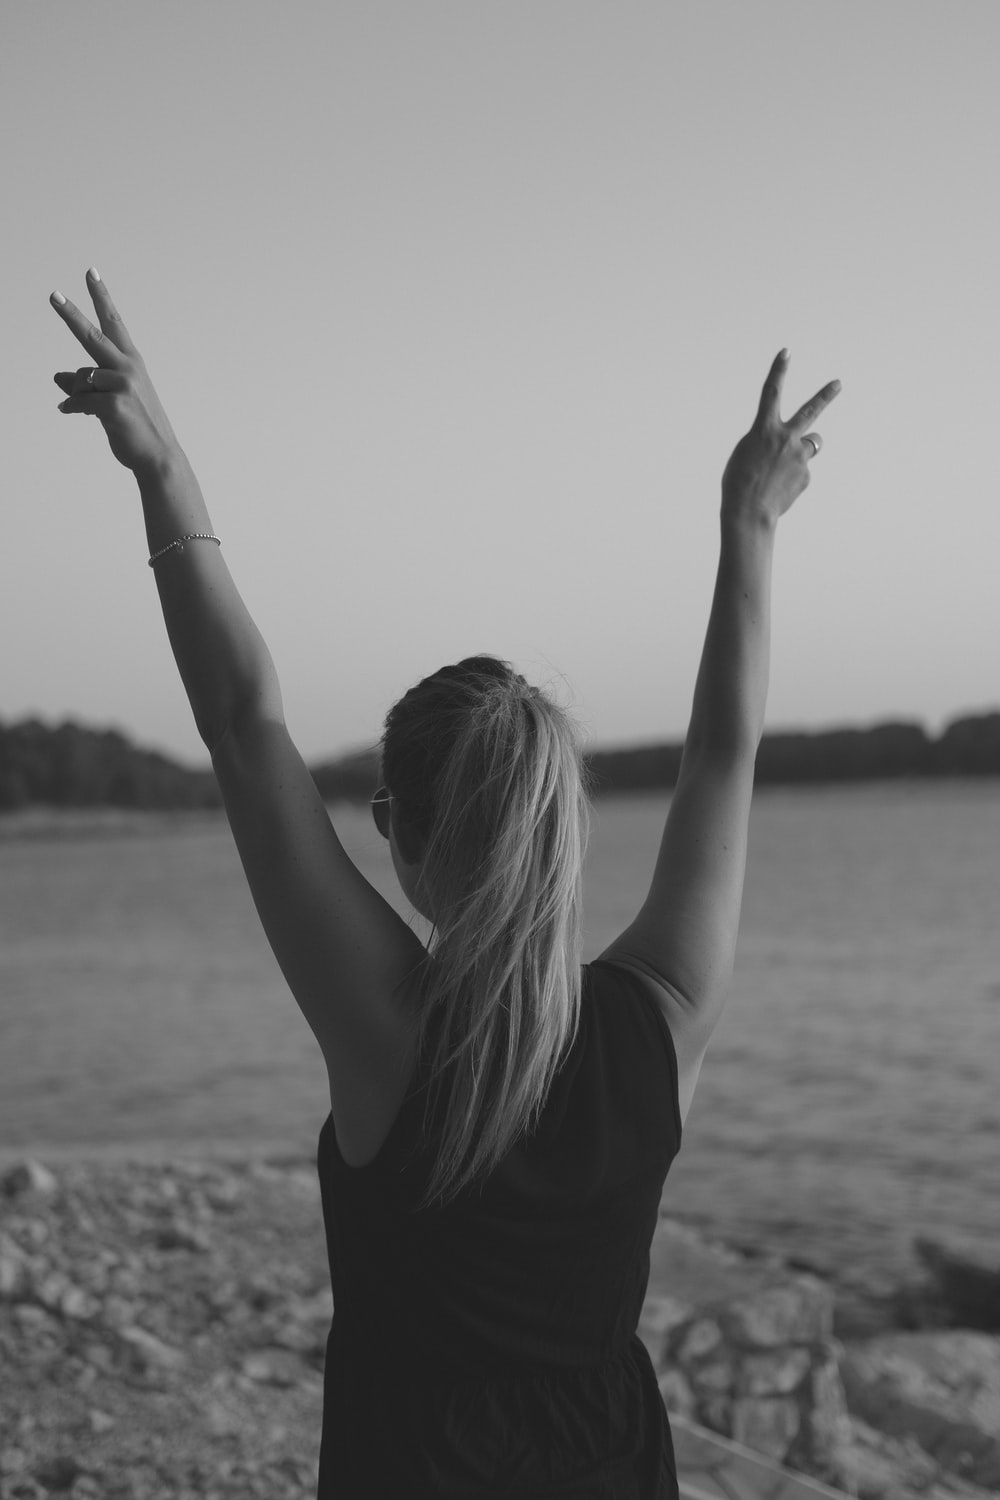 grayscale photo of woman wearing black tank top walking on seashore while doing peace hand sign